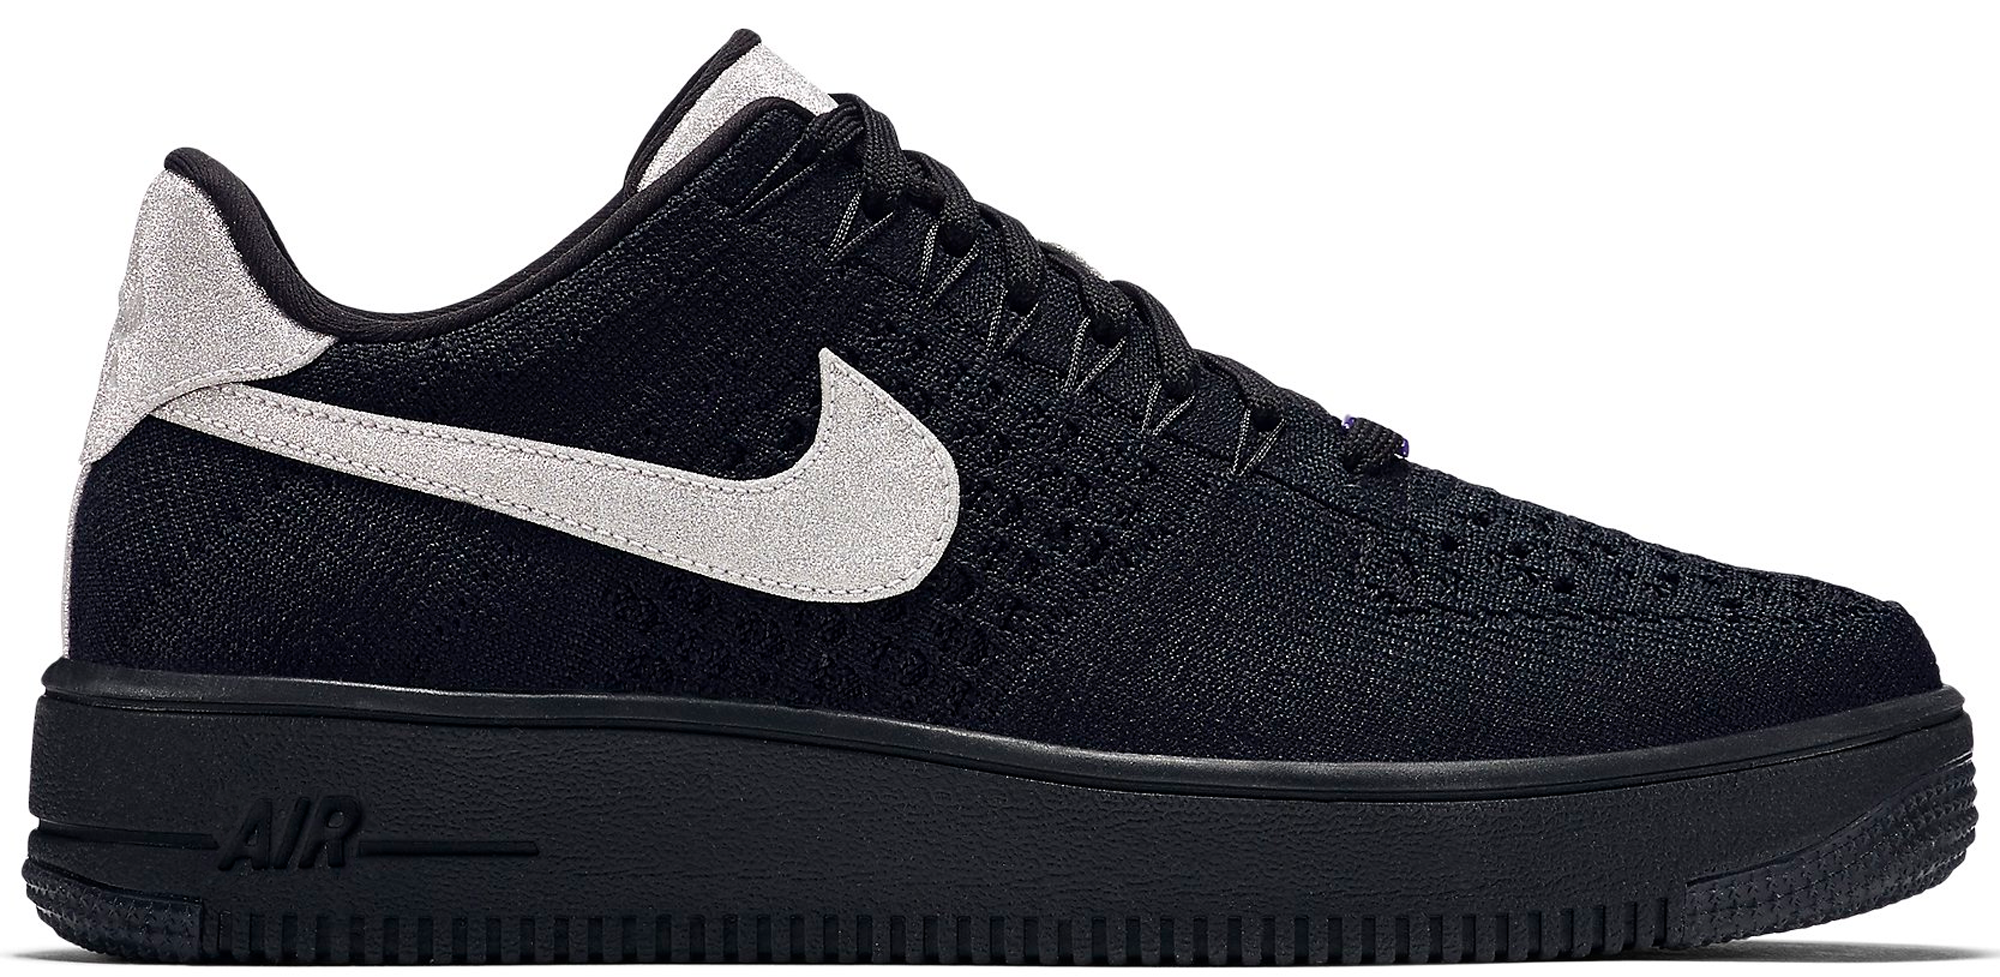 the best attitude 5ef3d dbd77 Nike Air Force 1 Ultra Flyknit Low AS QS Black Metallic Silver All Star 2017